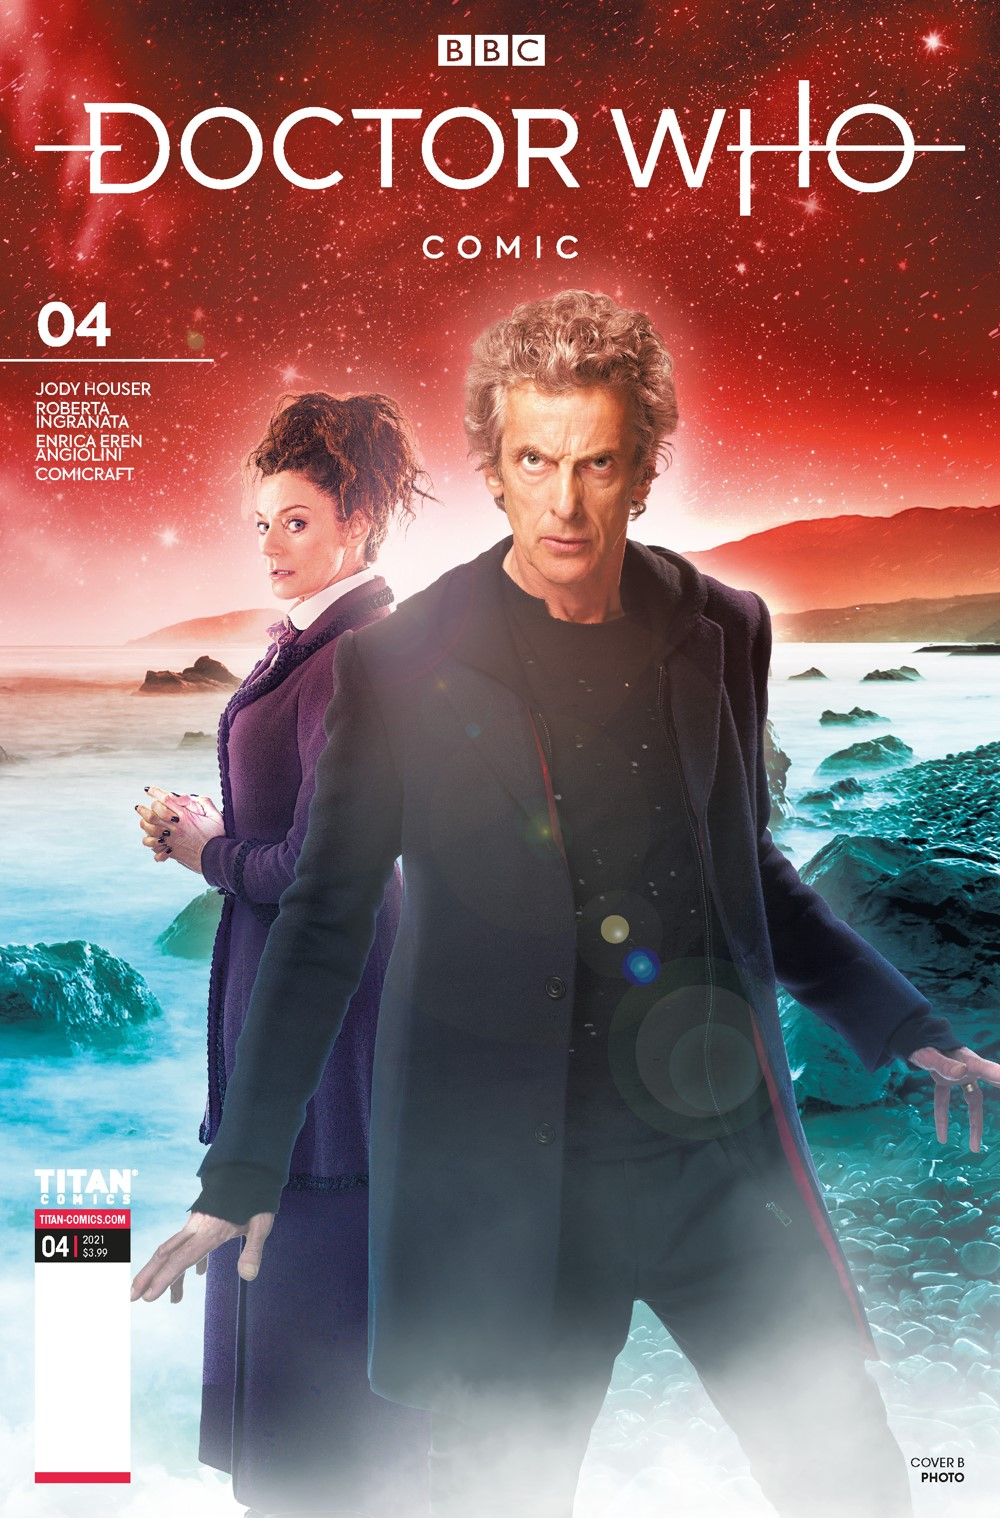 DW_Missy_4_01_COVER2 ComicList Previews: DOCTOR WHO MISSY #4